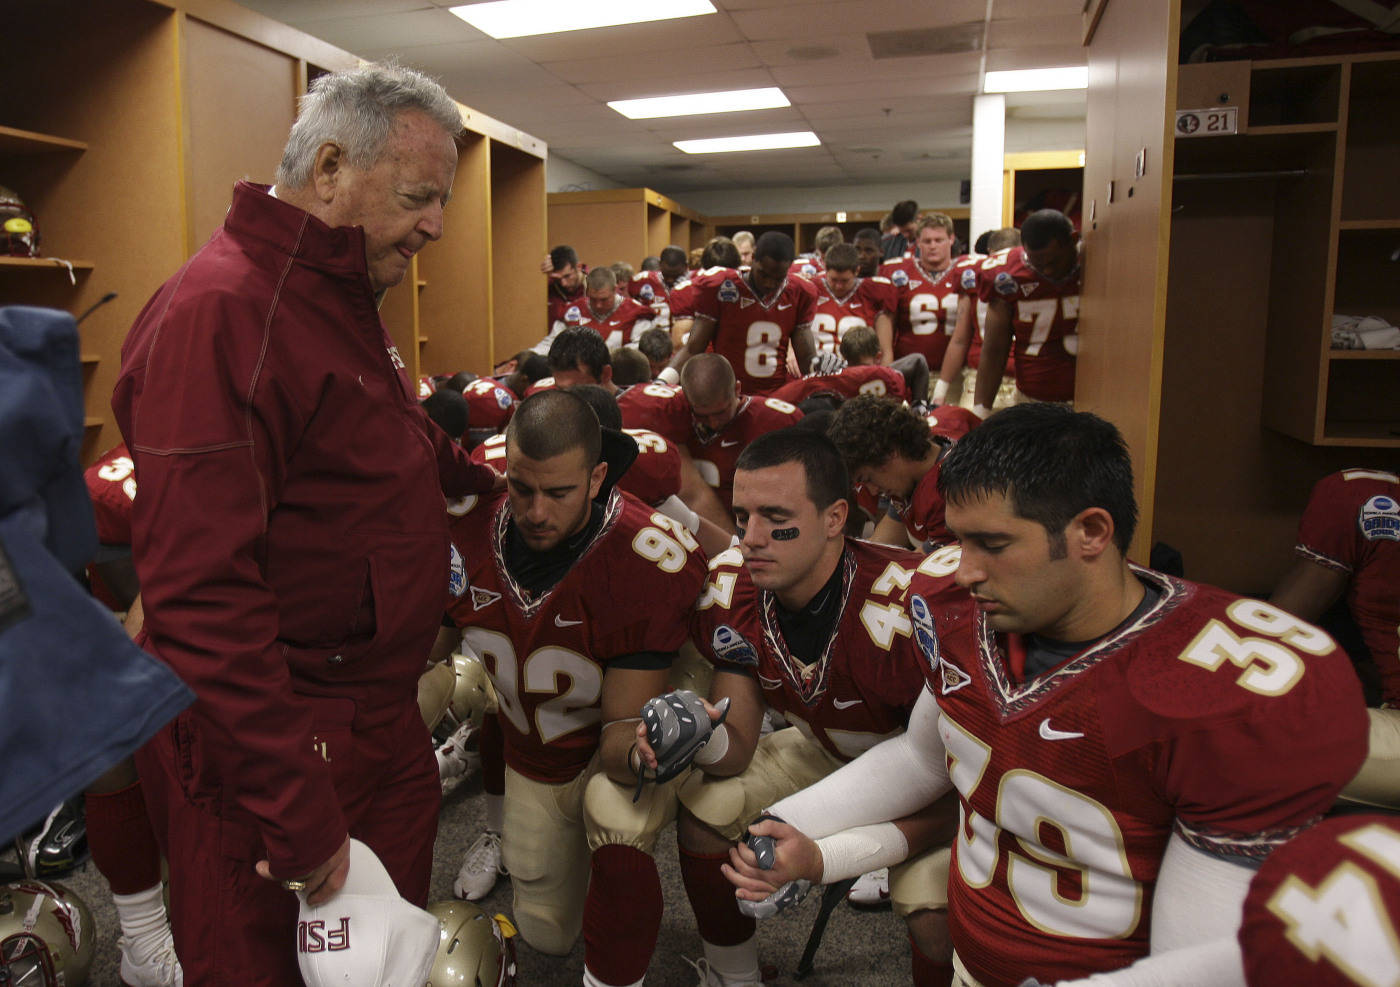 Florida State head coach, Bobby Bowden delivers a prayer in the locker room prior to the start of the Gator Bowl NCAA college football game against West Virginia, on Friday, Jan. 1, 2010, in Jacksonville, Fla.(AP Photo/Phil Coale)